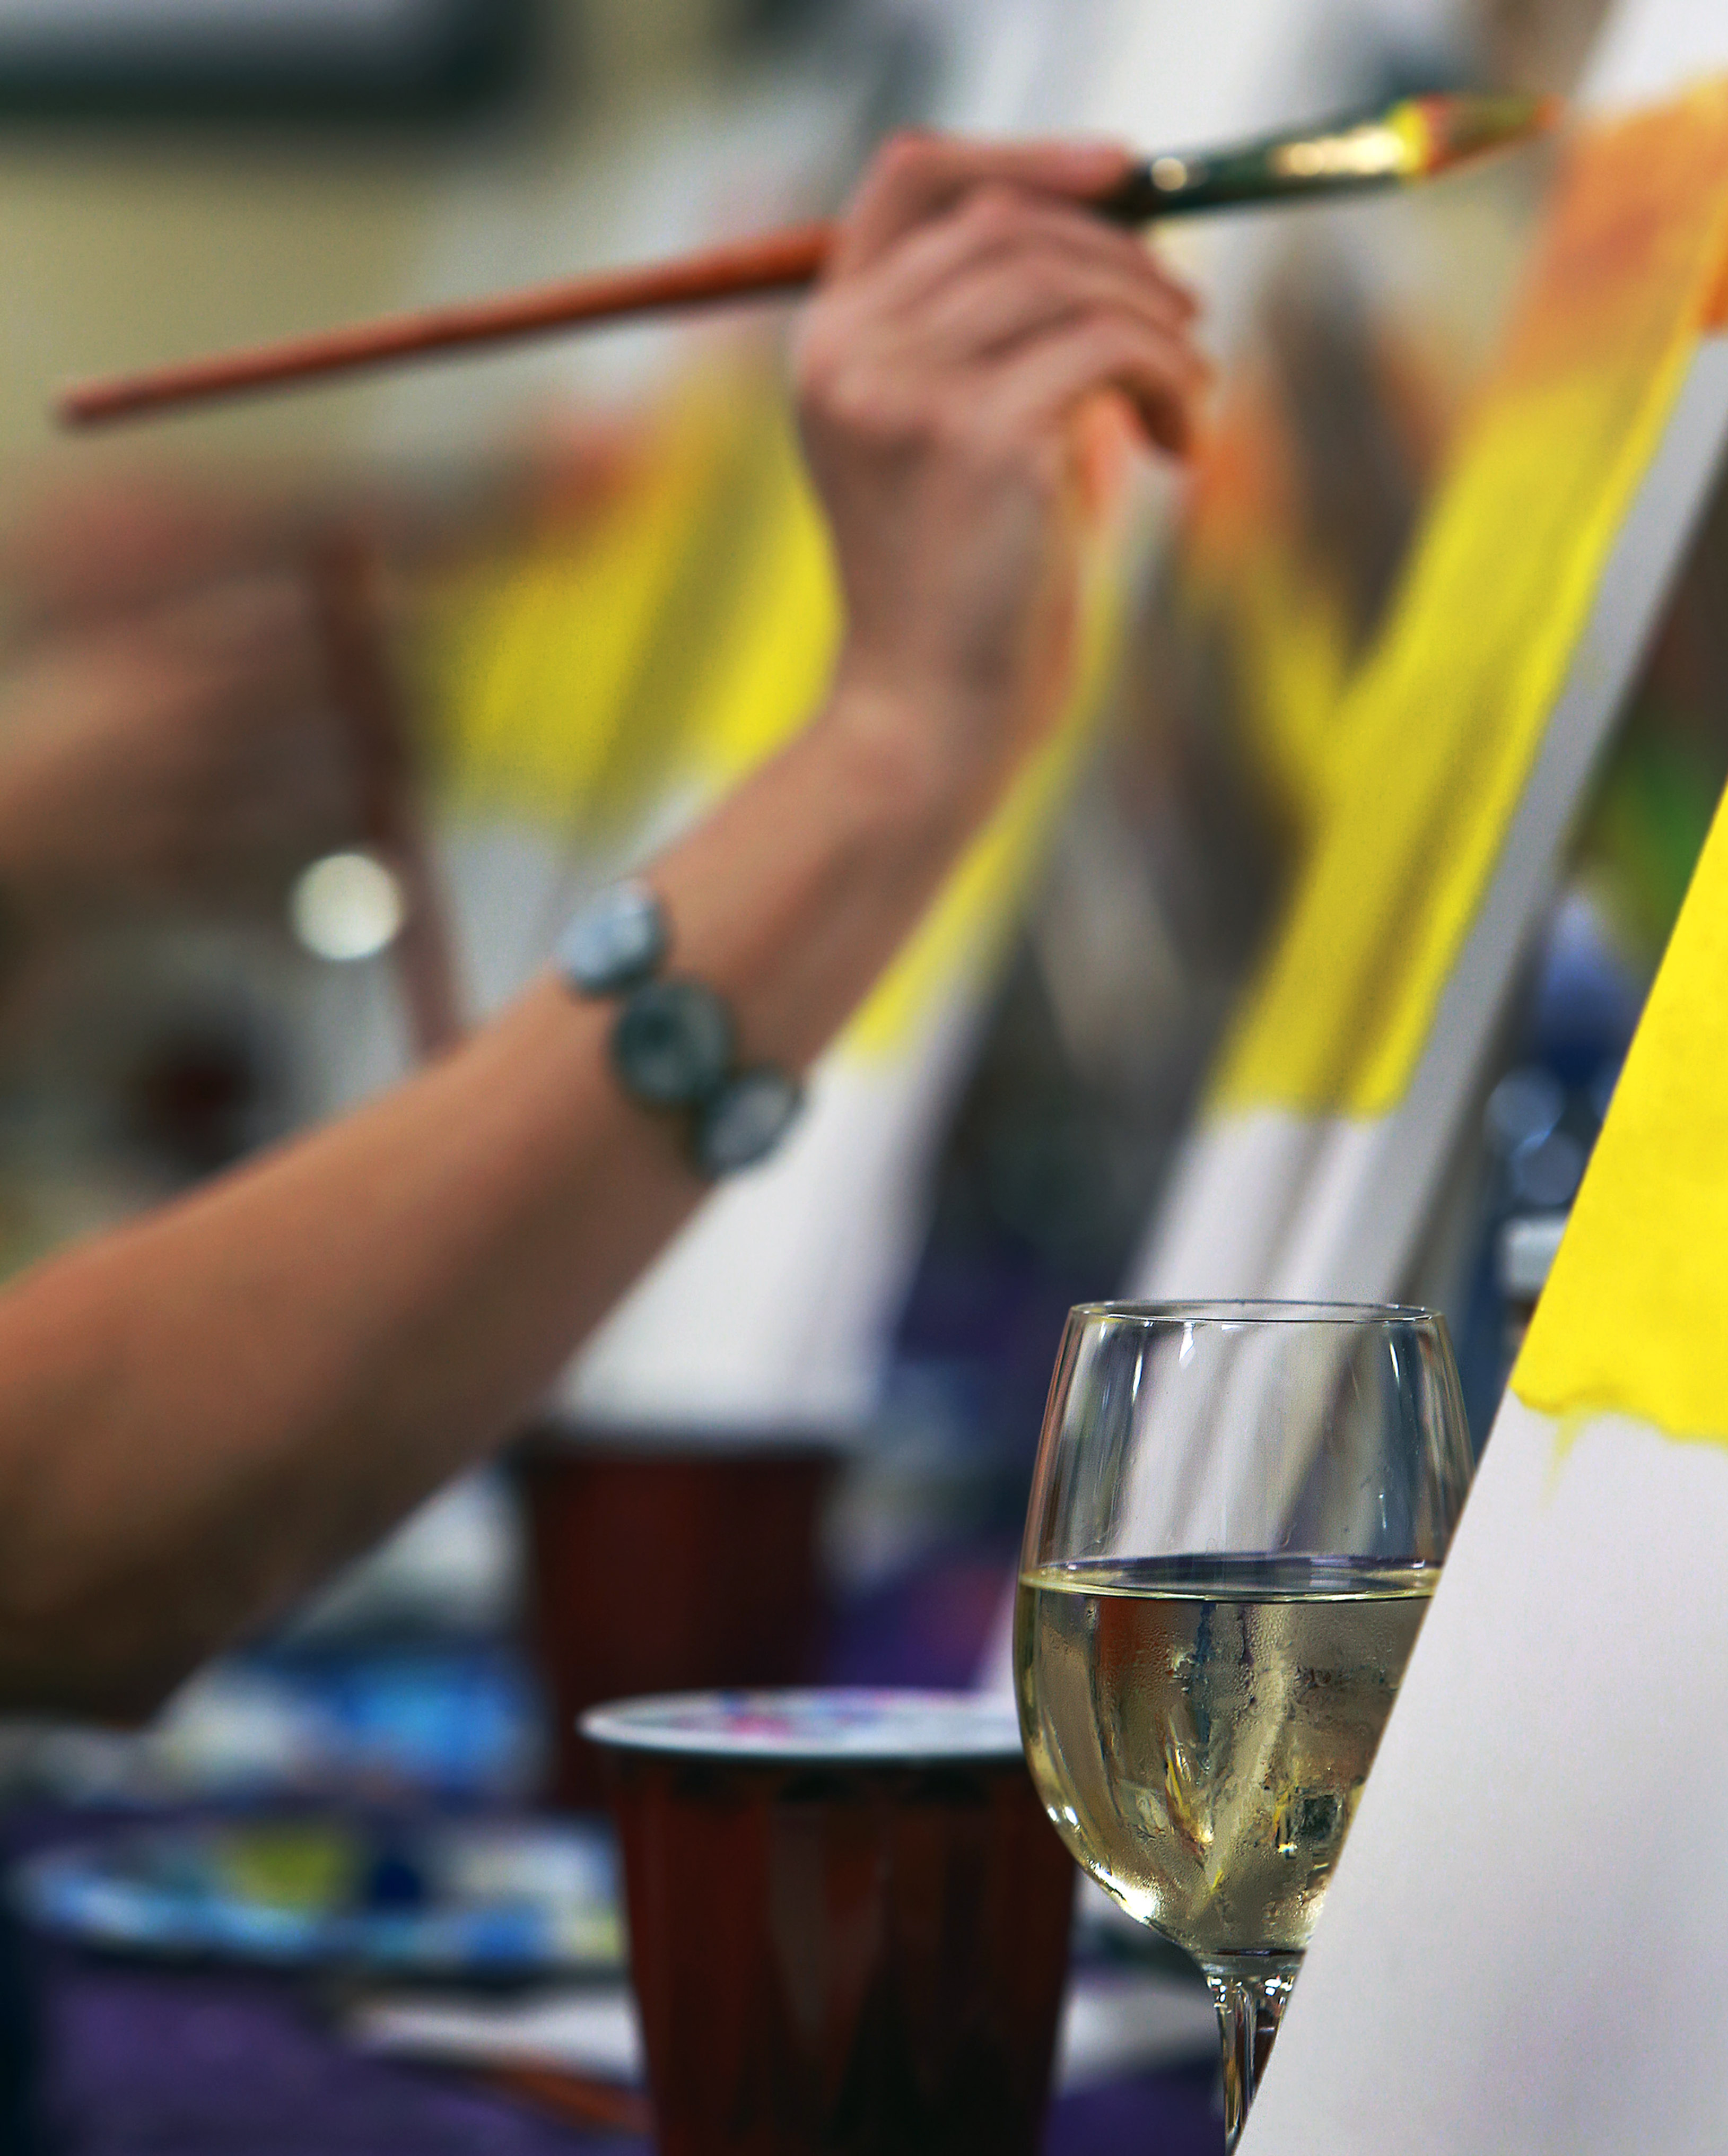 Painting - Your Choice  7:00 - 9:00 pm